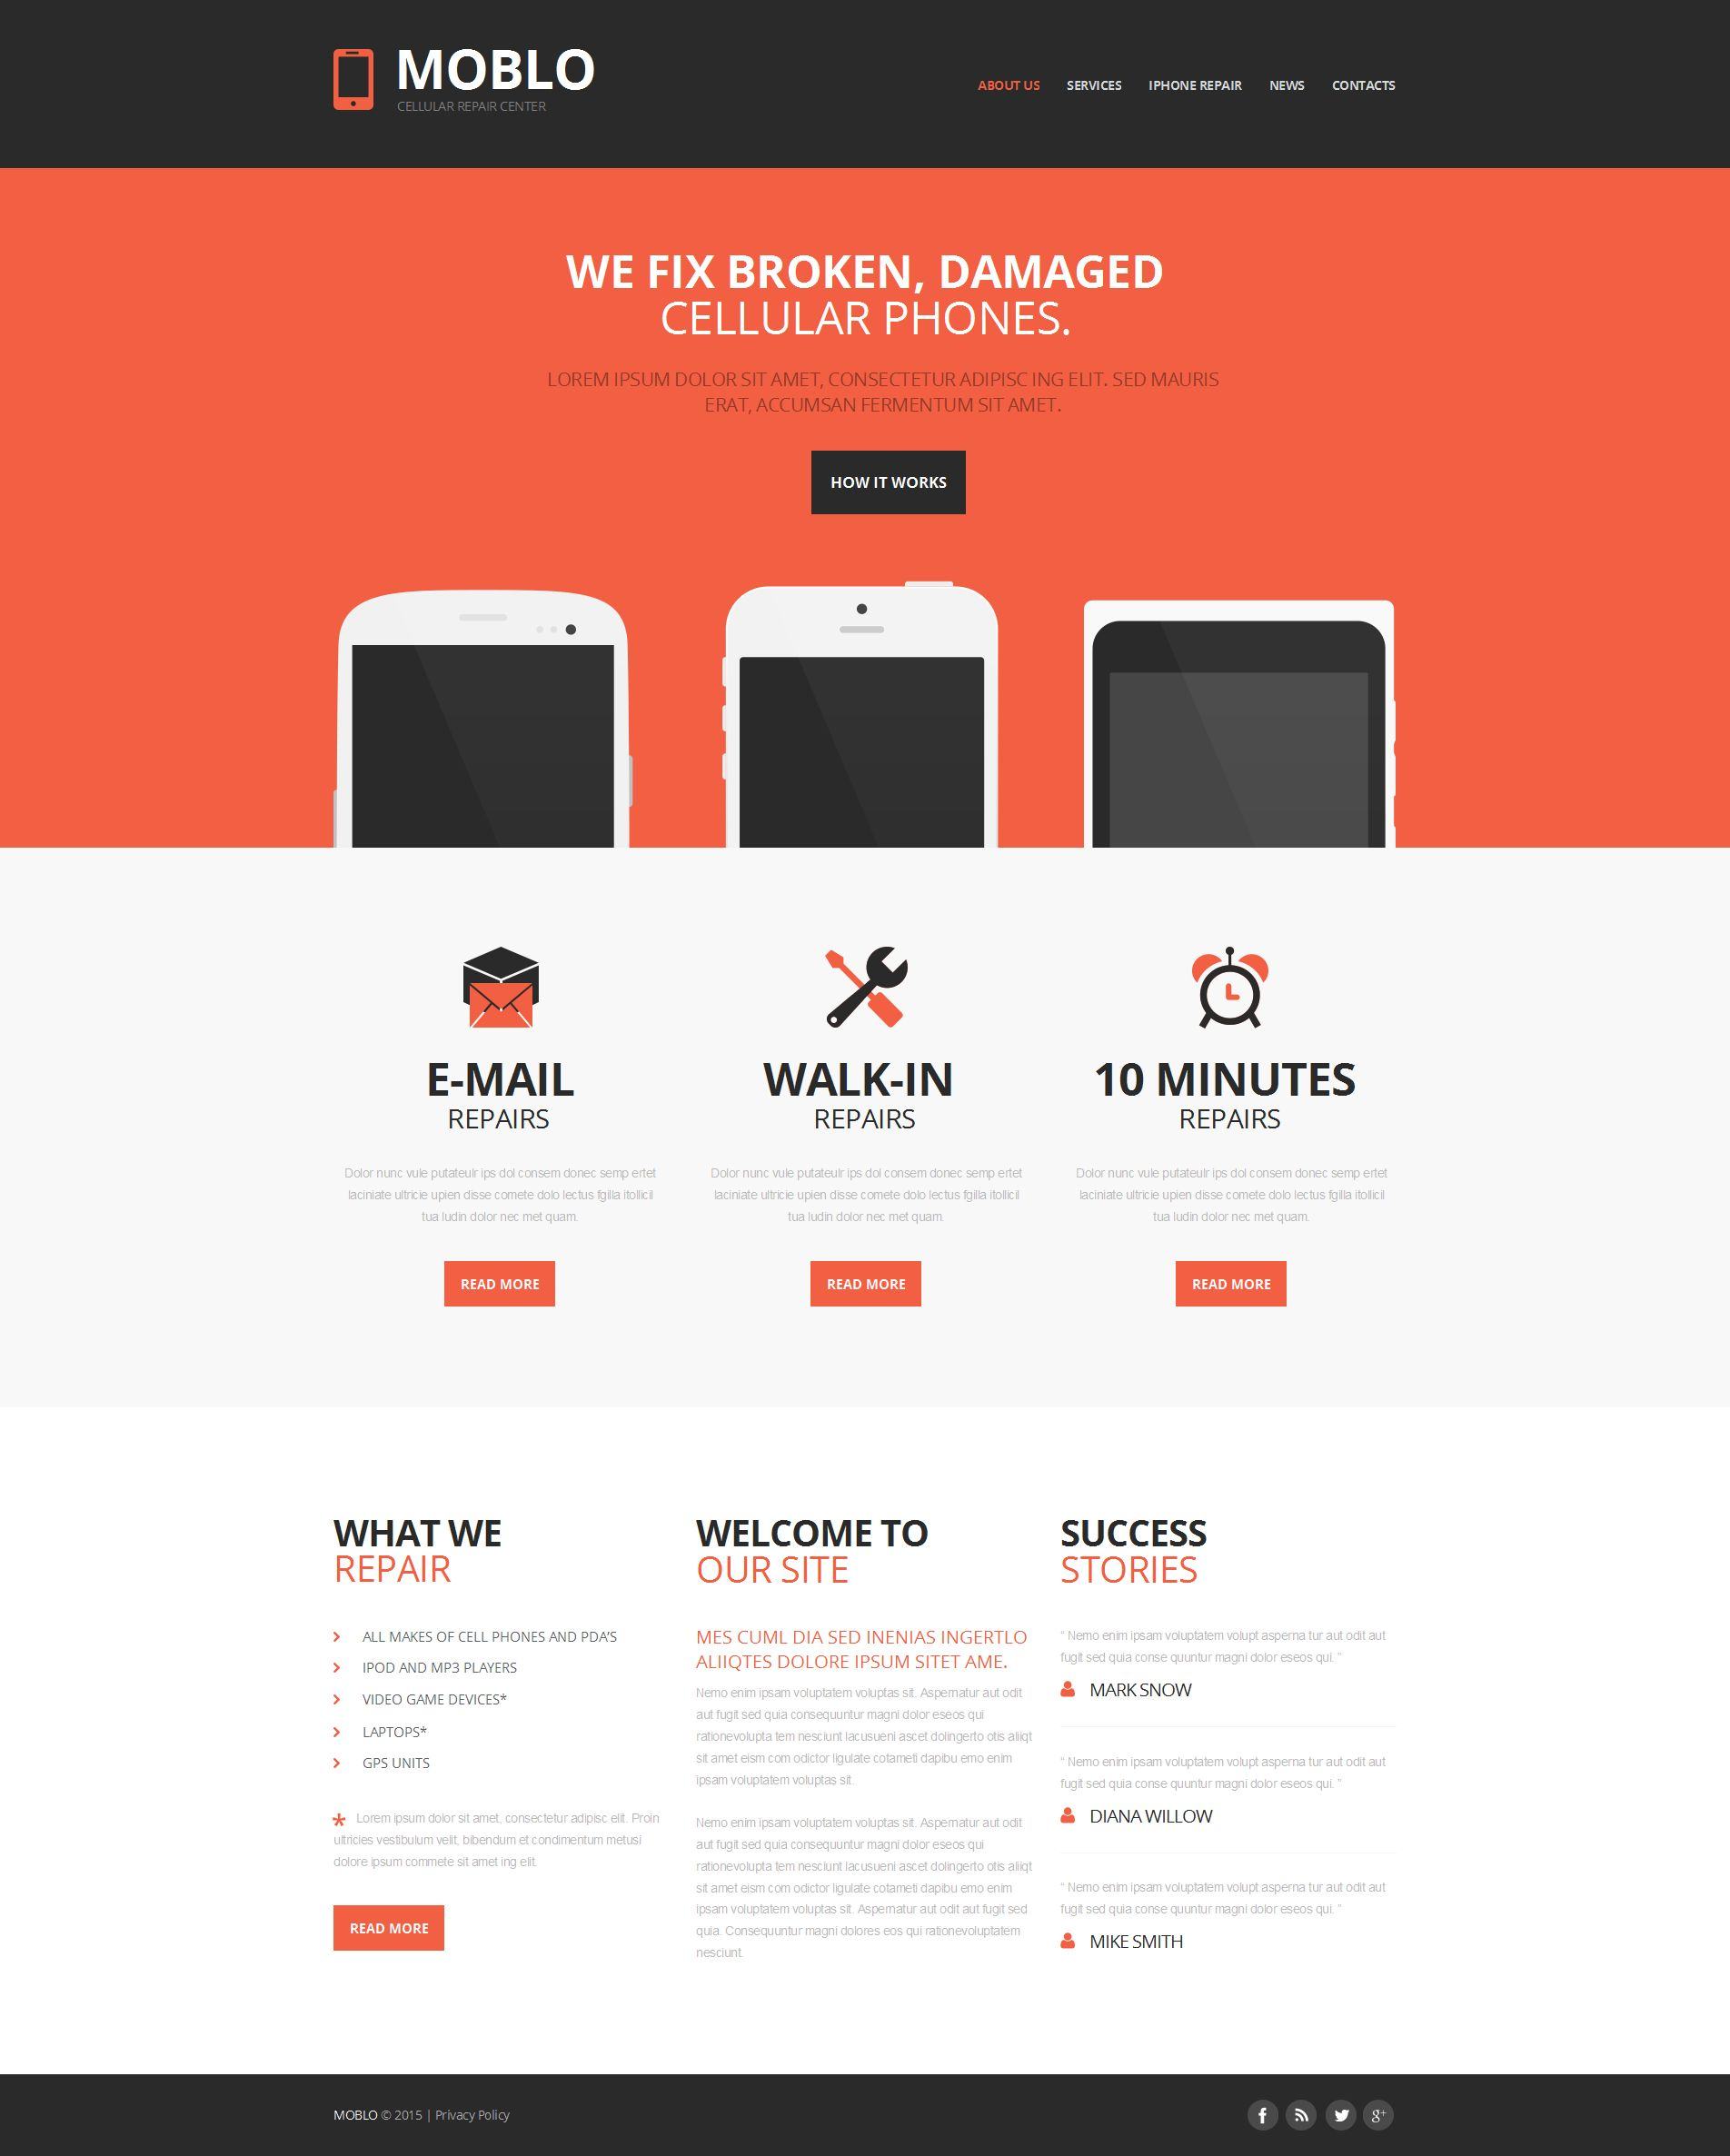 Mobile Repair Service Moto CMS HTML Template - Mobile friendly ebay template